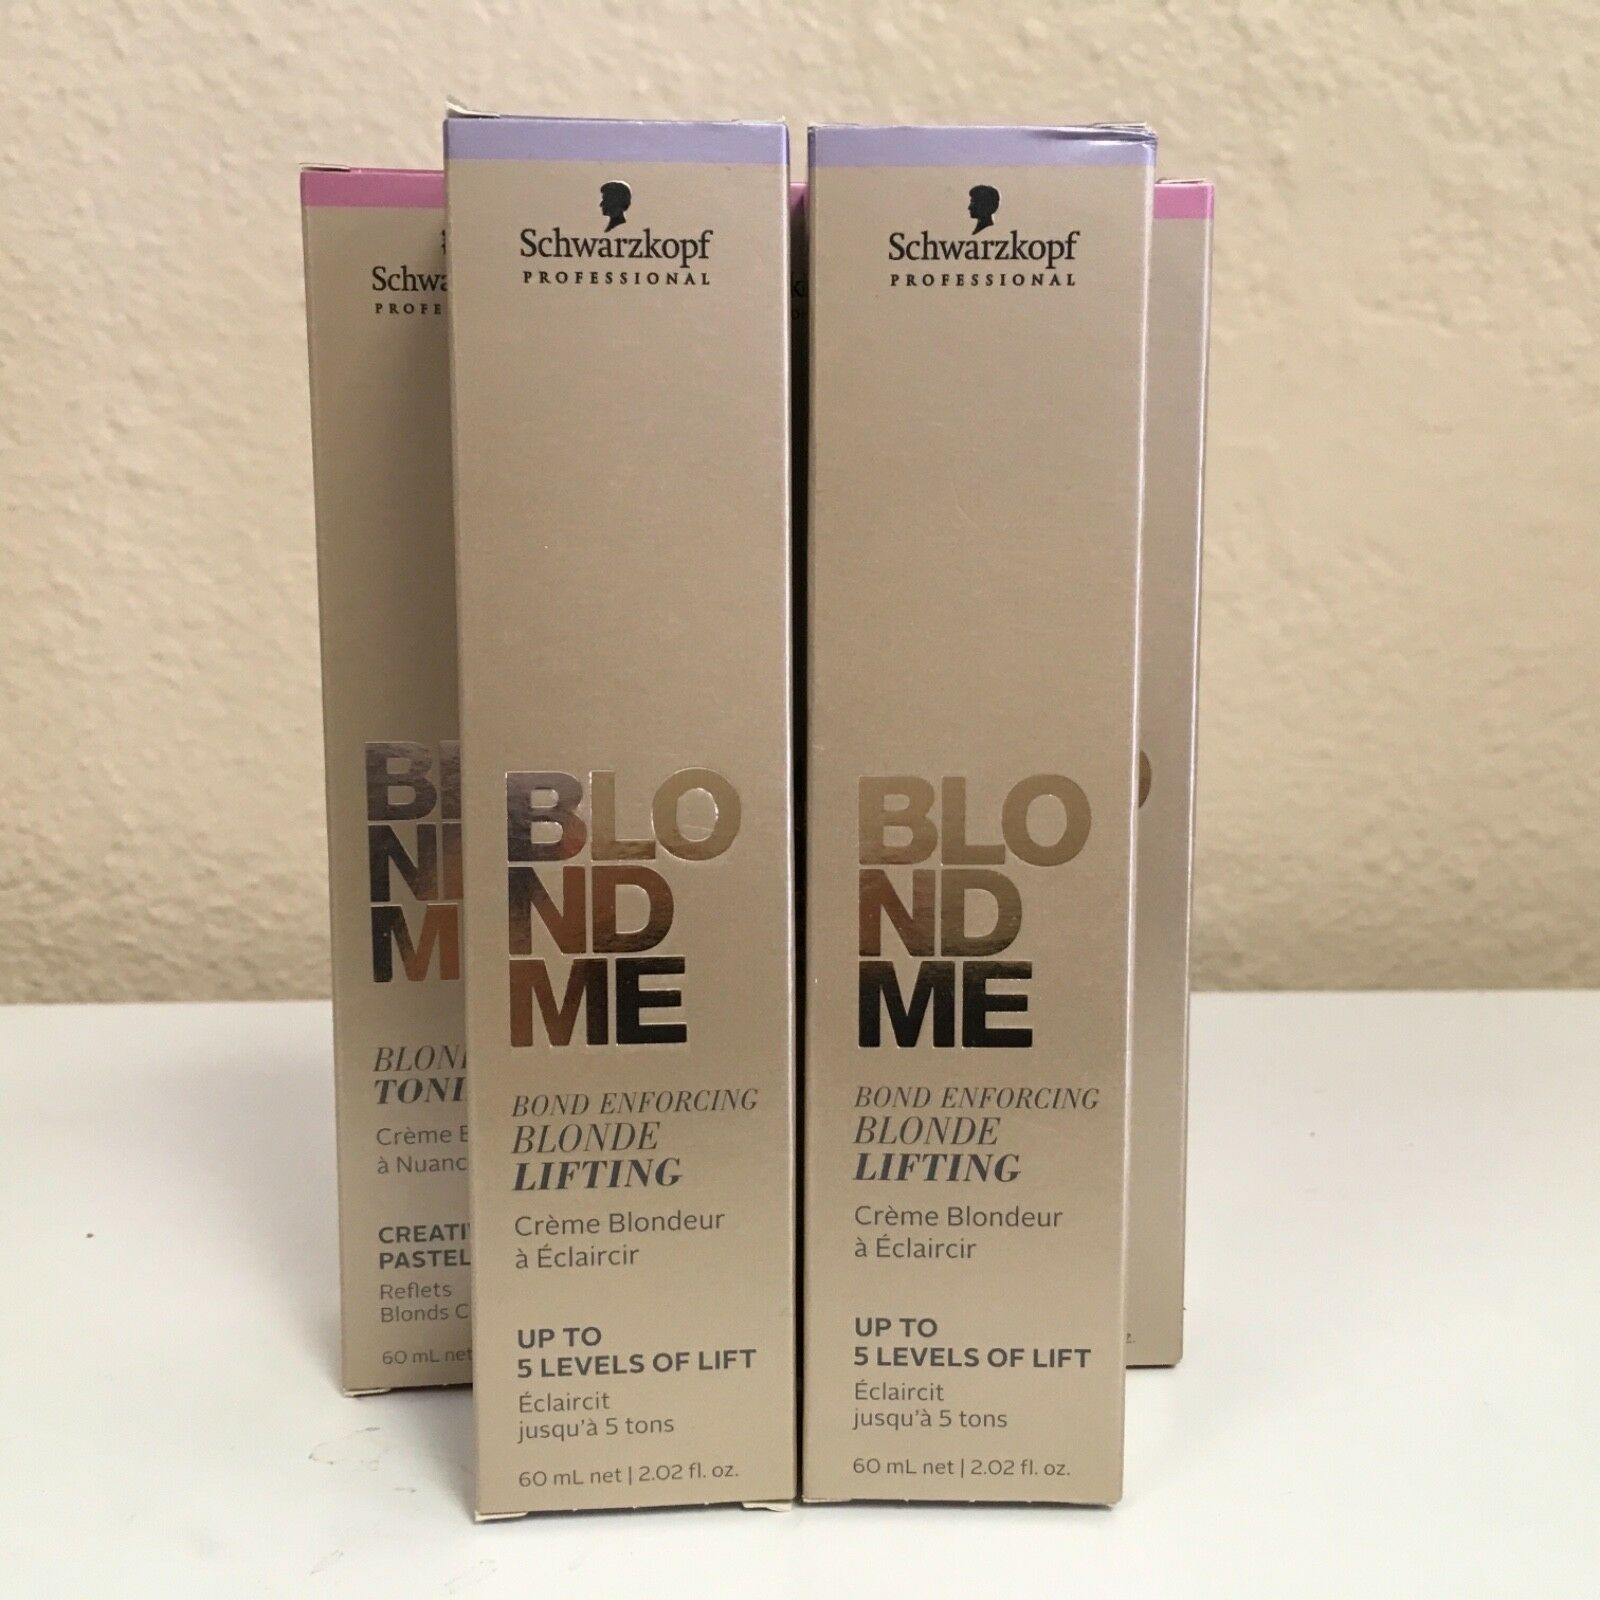 Schwarzkopf Blondme Blonde Lifting Hair Color Cream 60ml NIB ~YOU CHOOSE!~